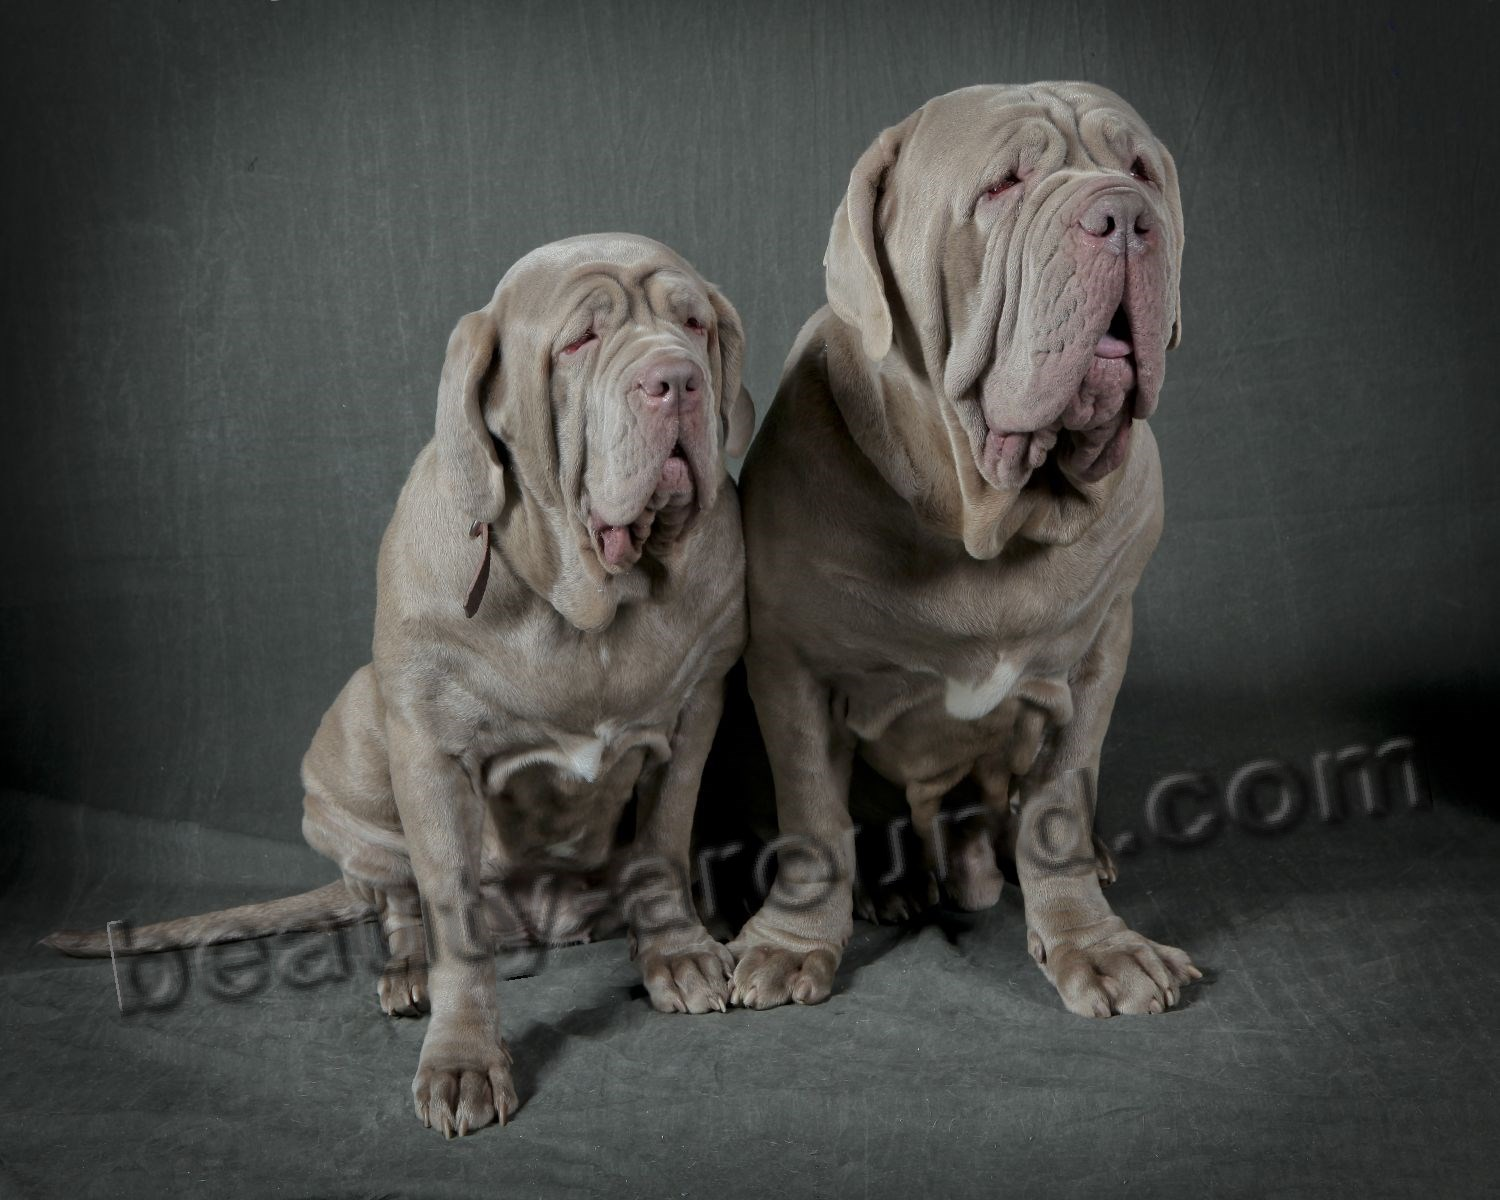 Neapolitan Mastiff or Mastino Napoletano photo